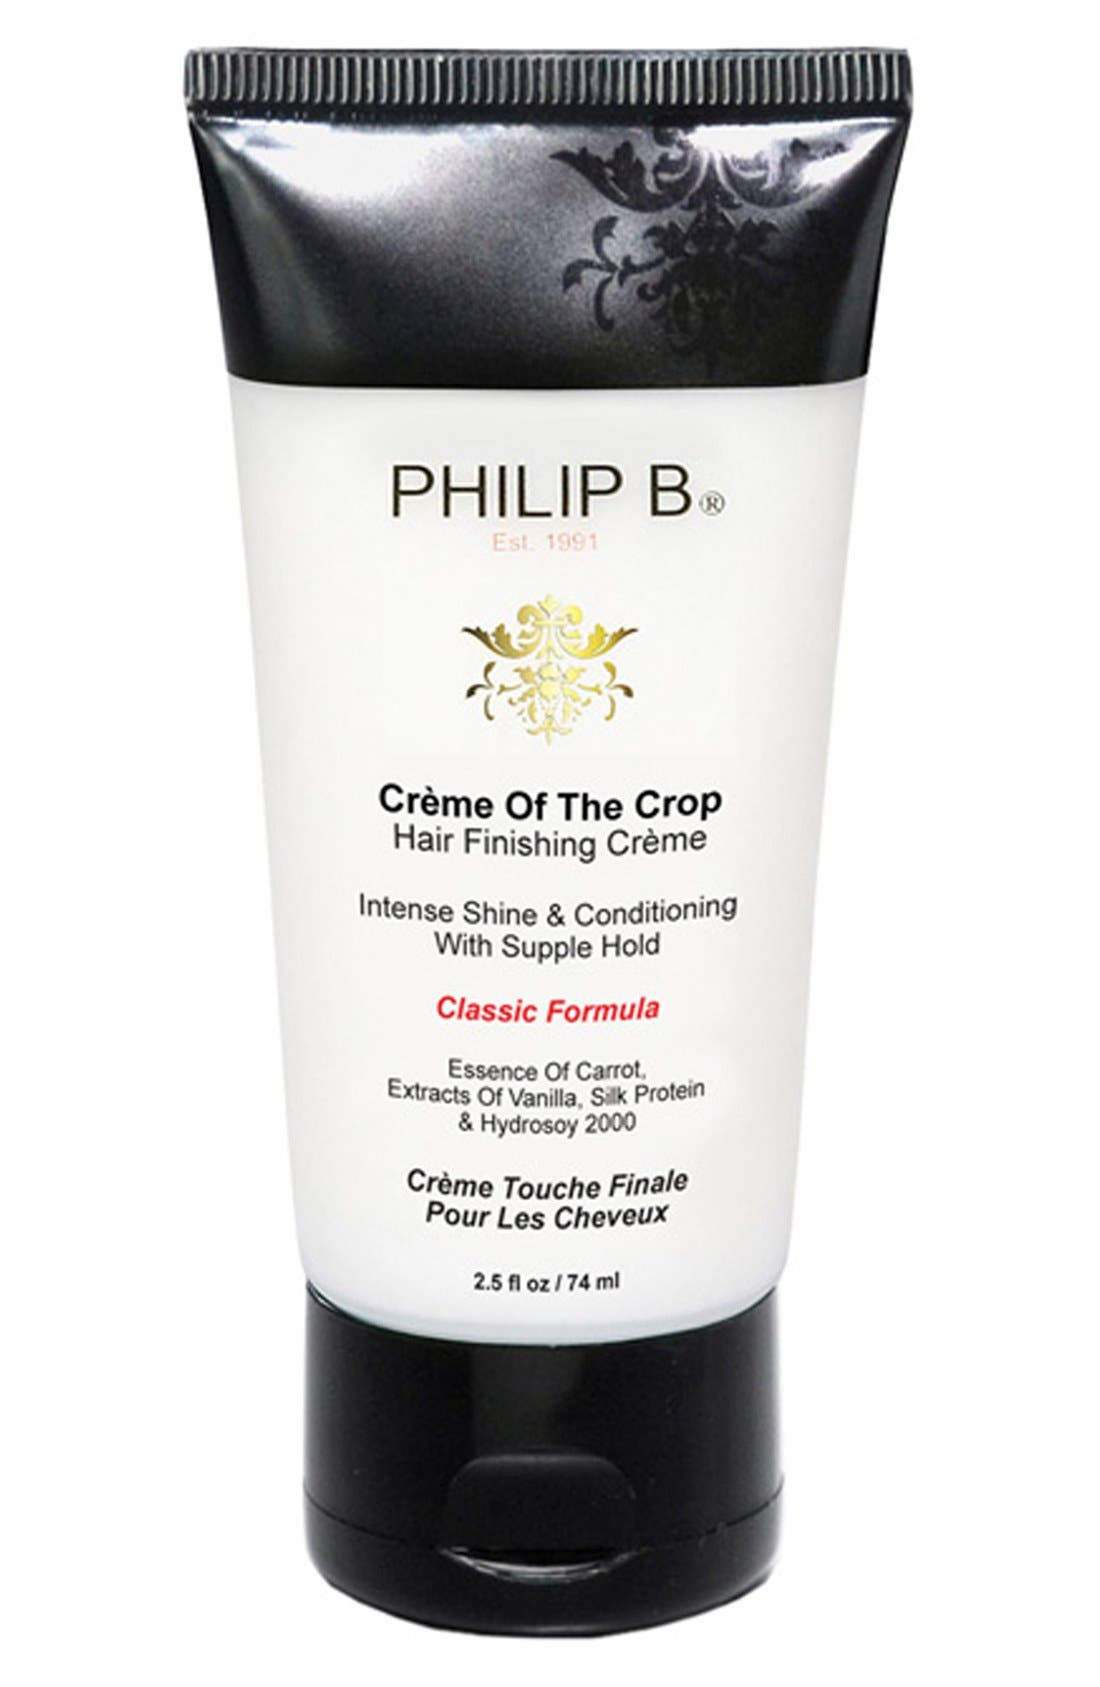 PHILIP B® 'Crème of the Crop' Hair Finishing Crème